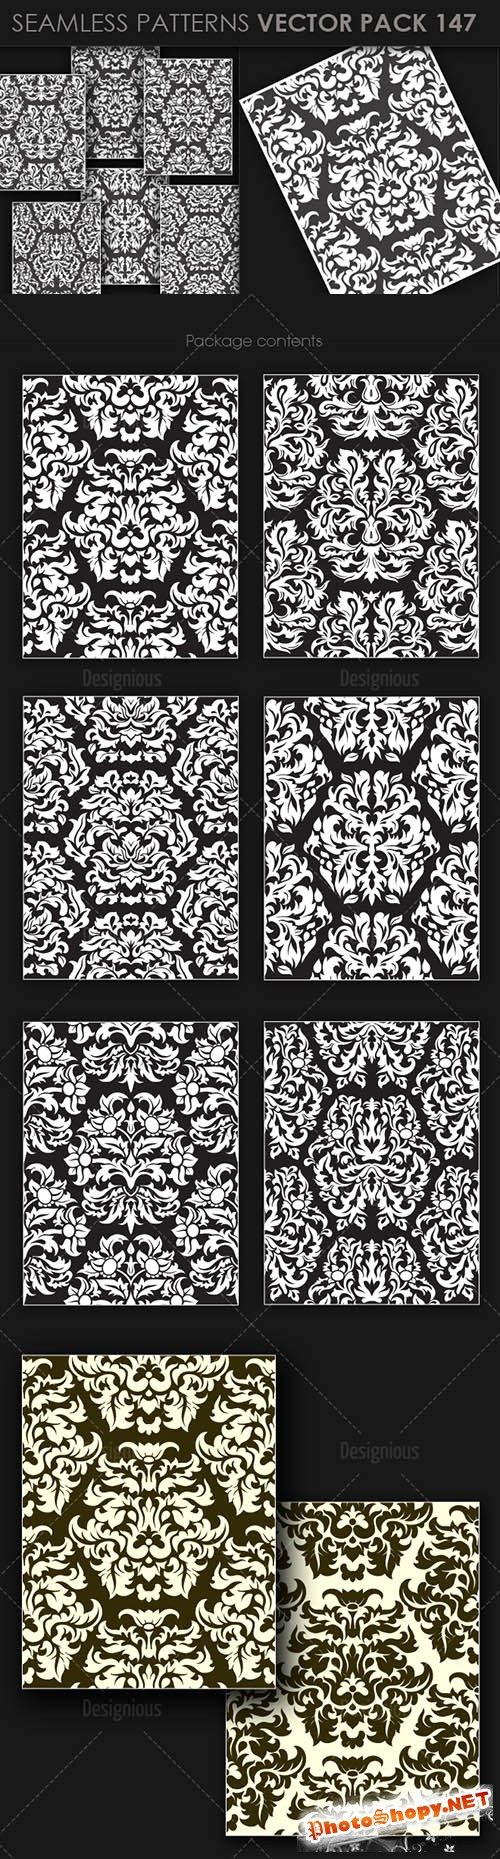 Seamless Patterns Vector Pack 147